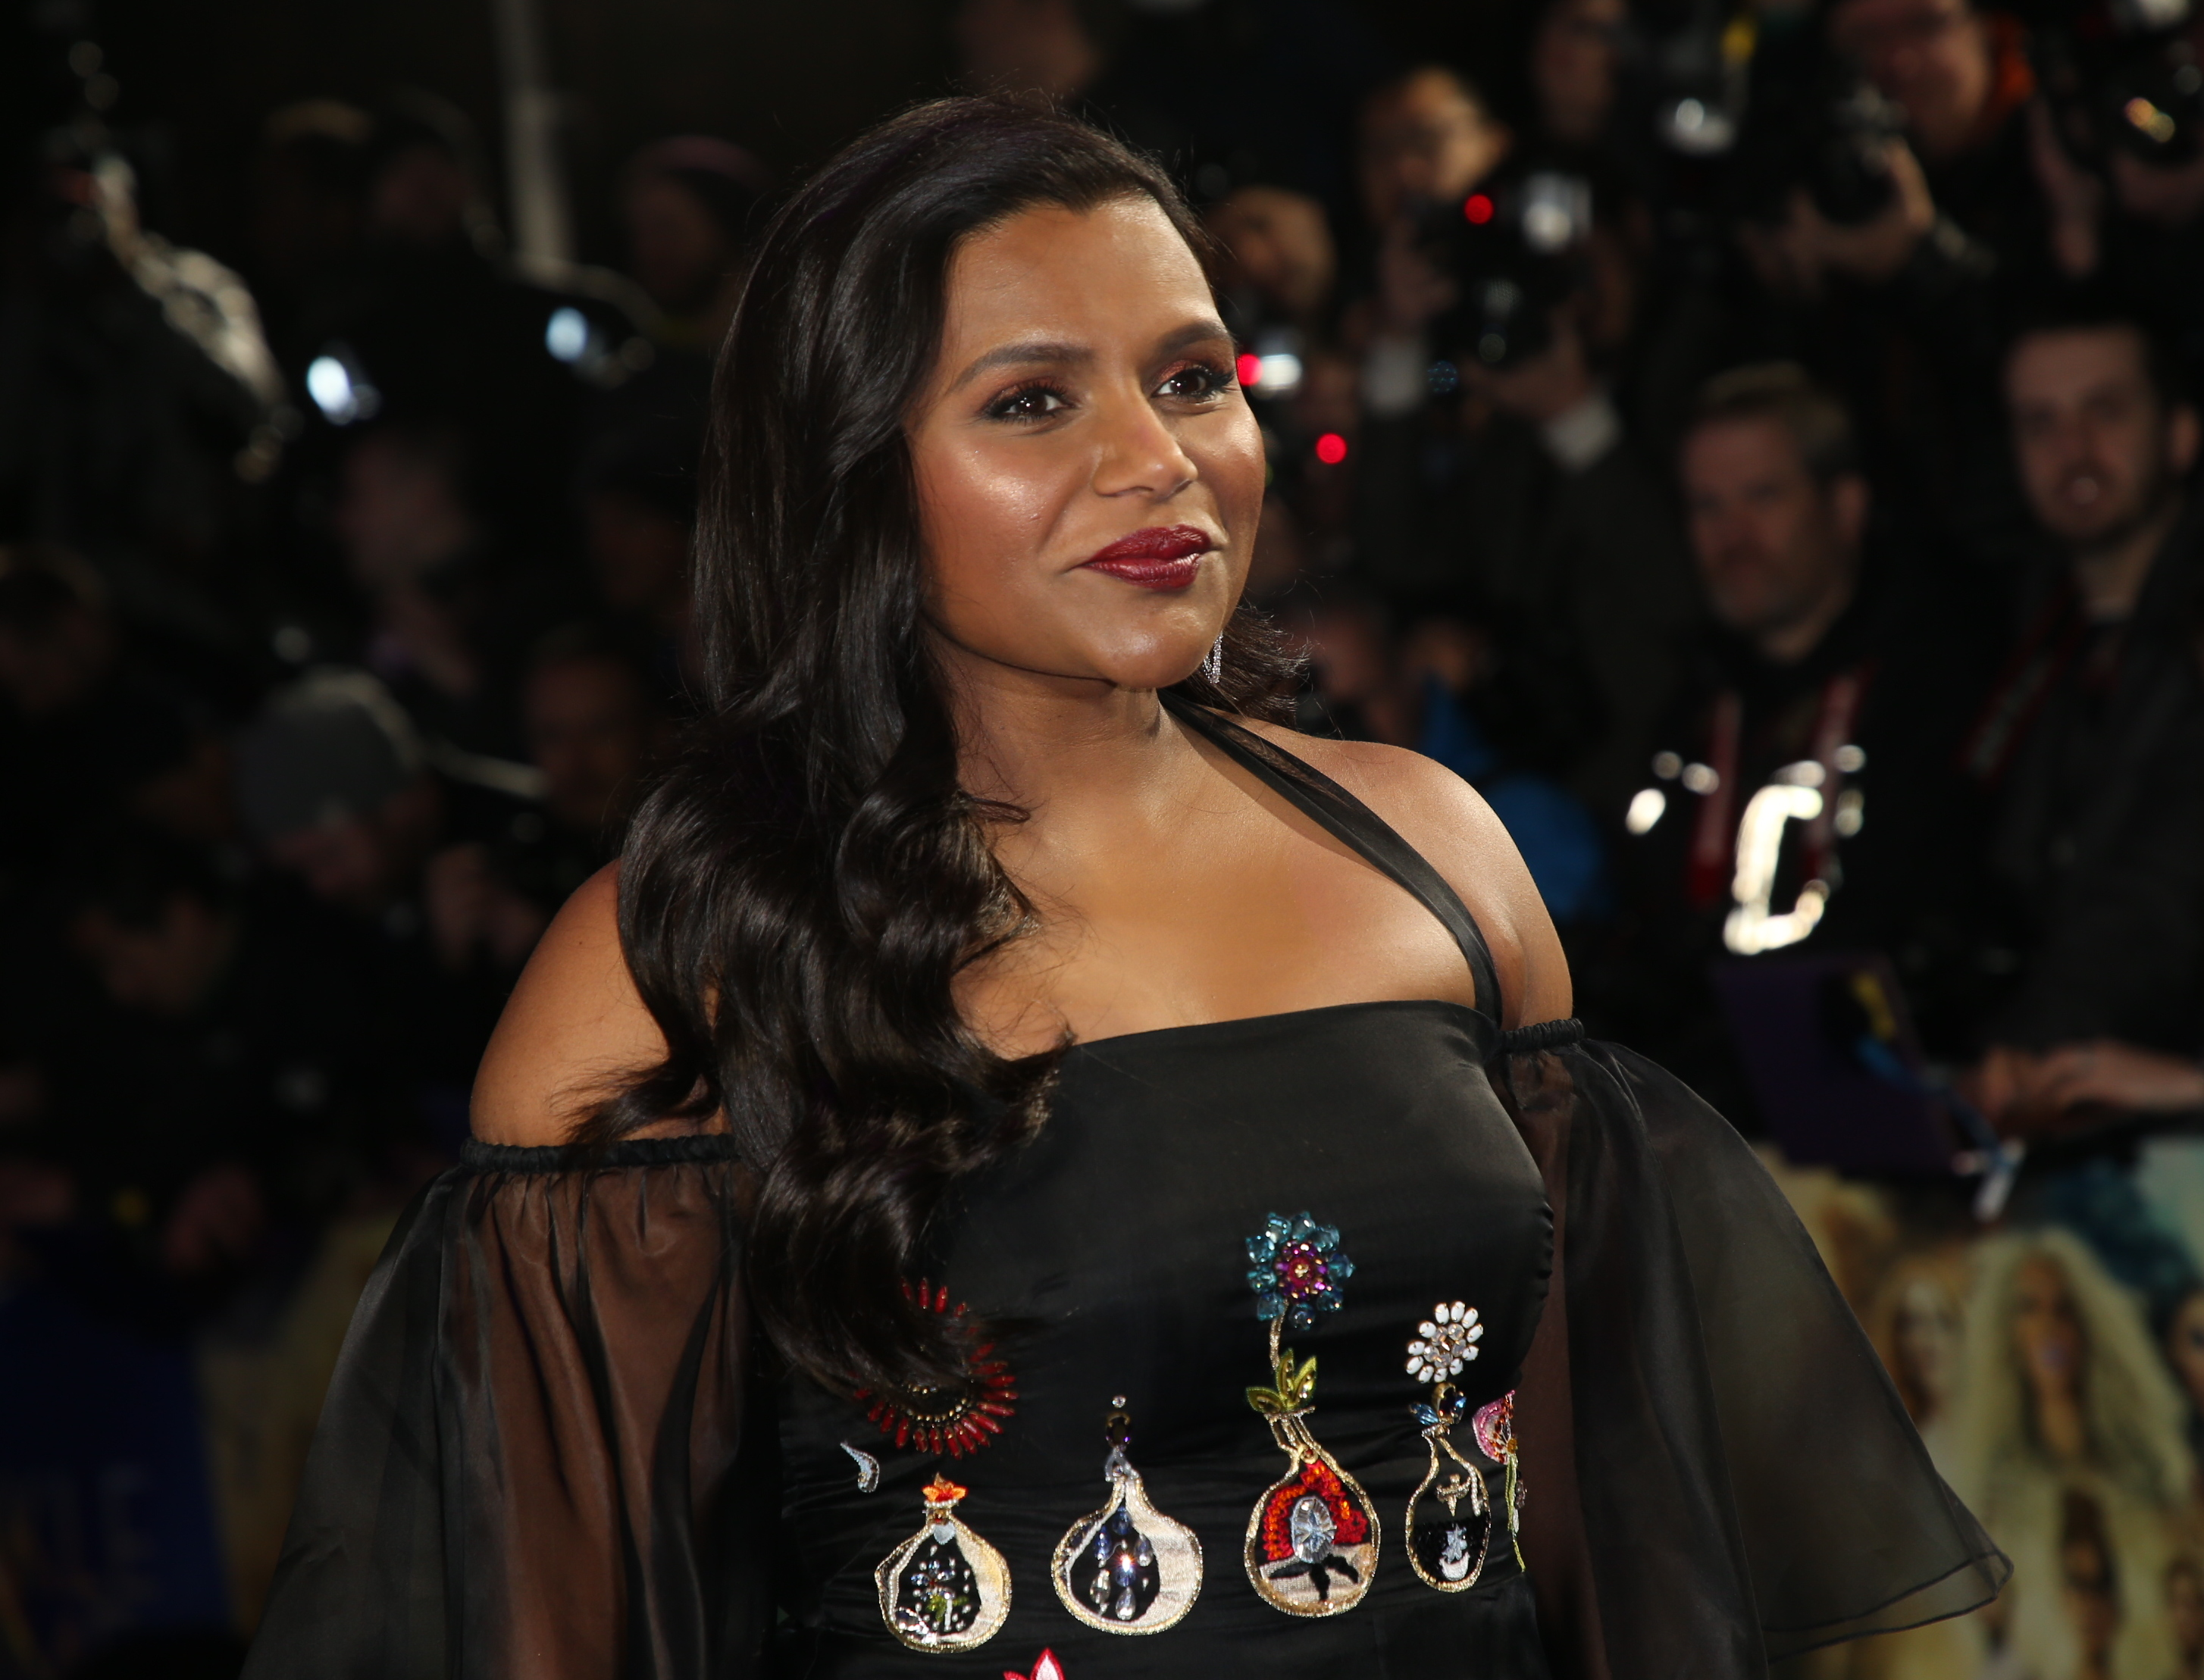 Mindy Kaling had the perfect answer for those who turned her into a meme. (Photo: WENN)